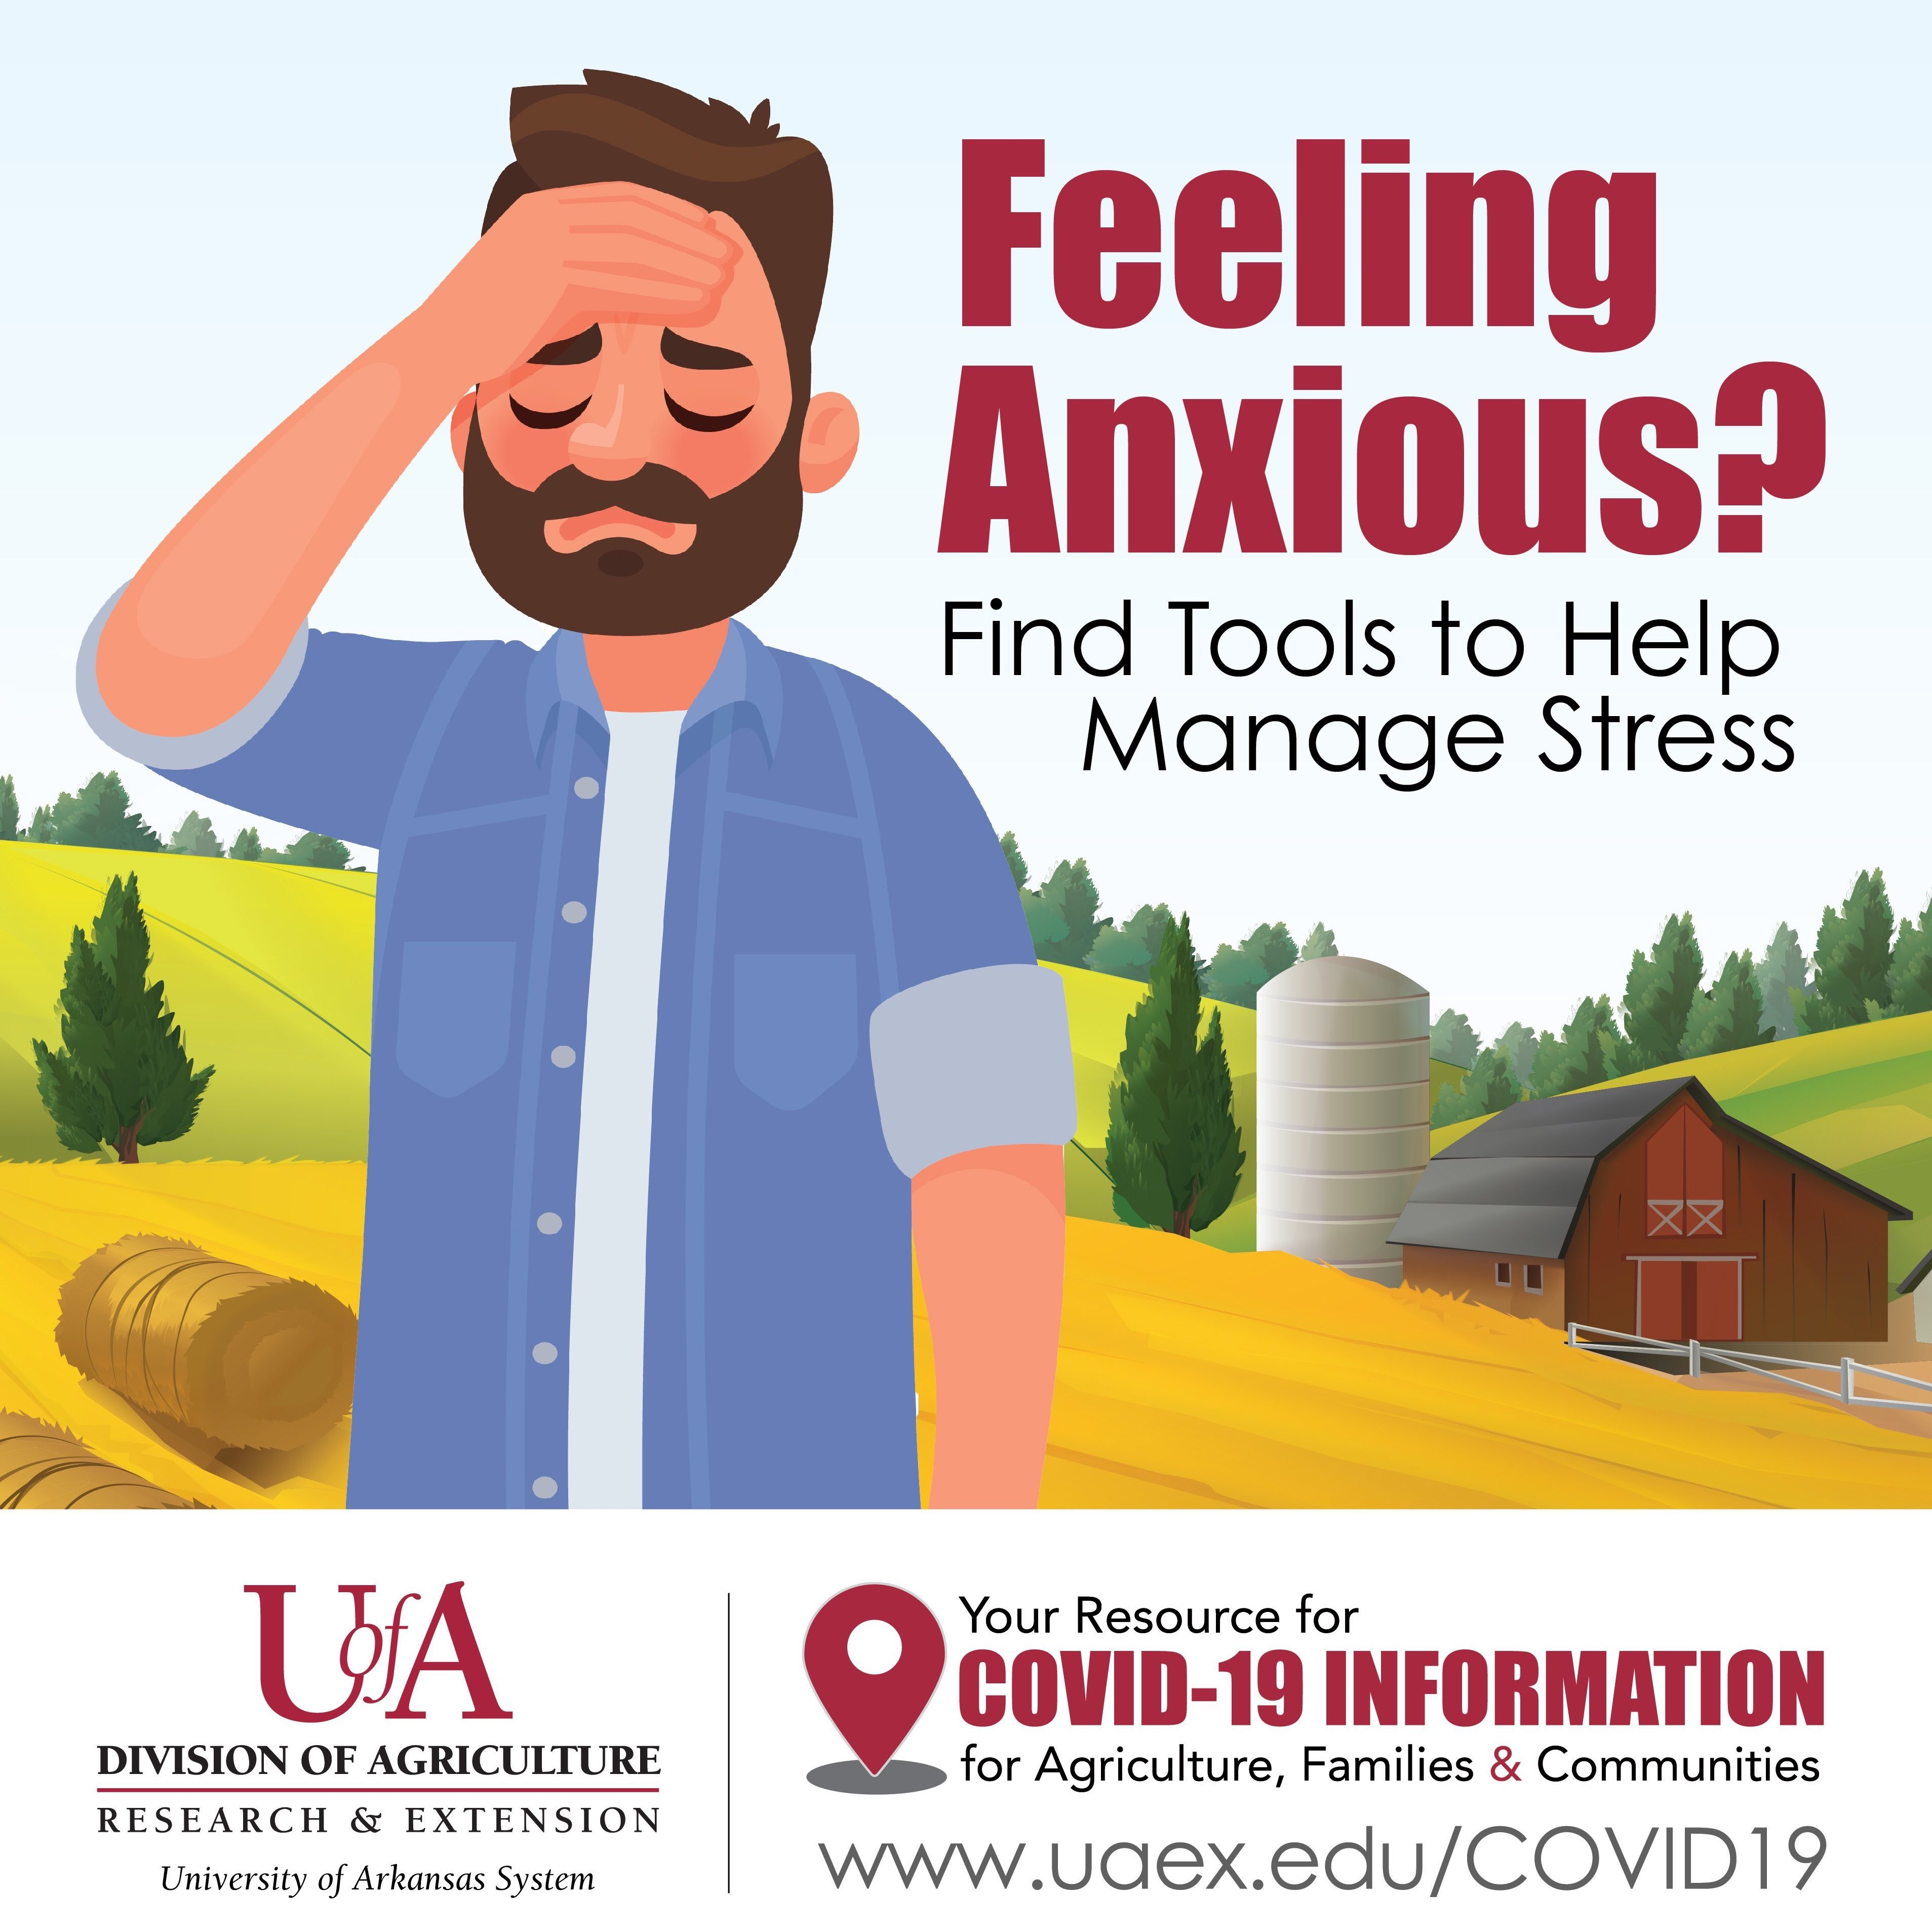 Feeling anxious? Find tools to help manage stress